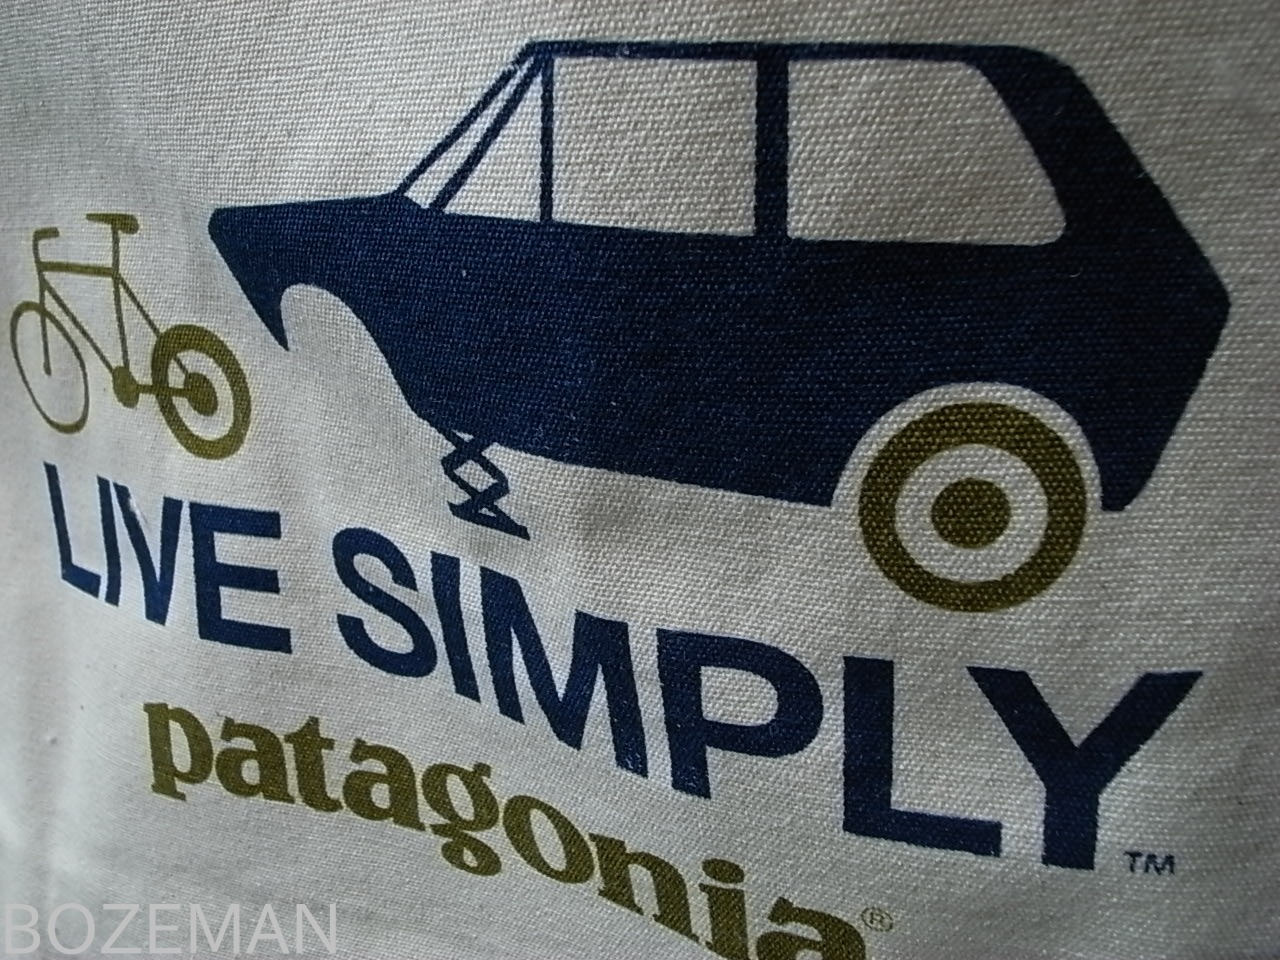 PATAGONIA CANVAS BAG LIVE SIMPLY SPARE_f0159943_1554971.jpg